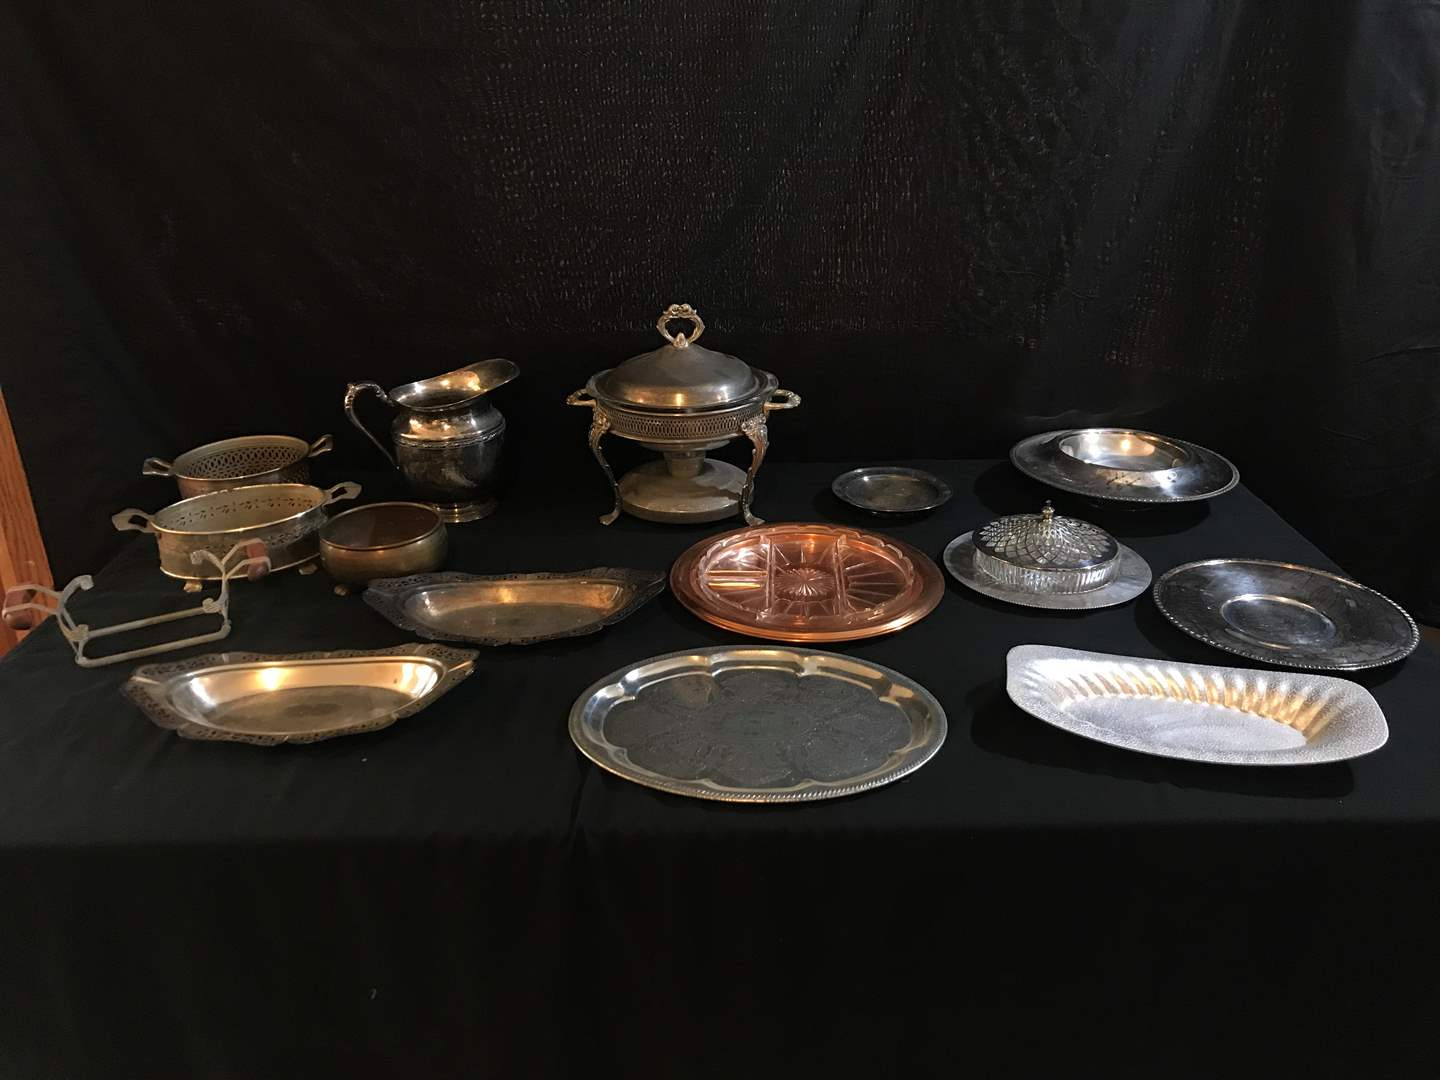 Lot # 77 - Silver Plated & Stainless Steel Items: Snack Trays, Pyrex Dish in Warming Stand & Drink Pitchers (main image)